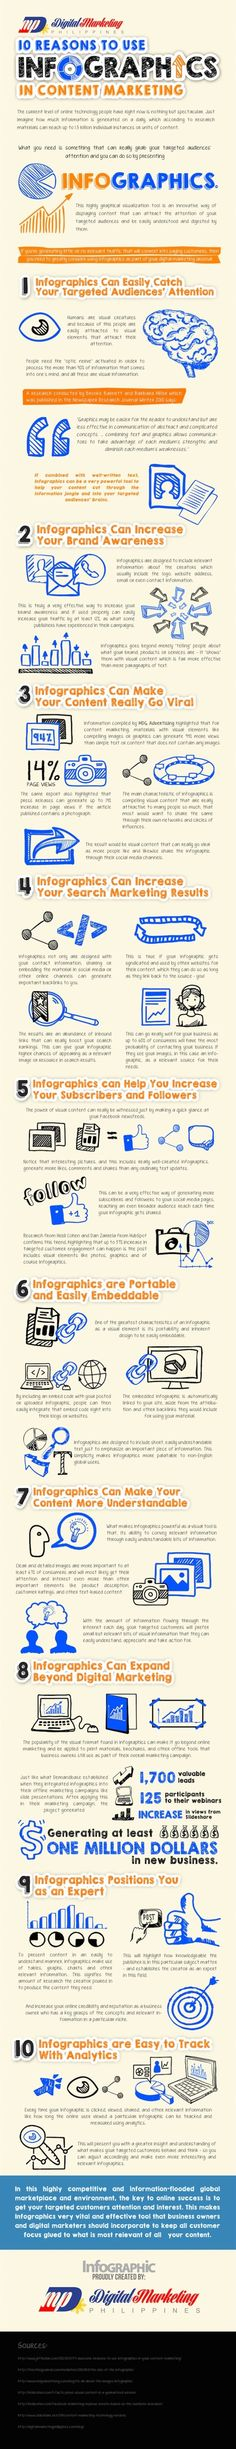 Why Infographics are an Absolute Must in Content Marketing | Marketing Technology